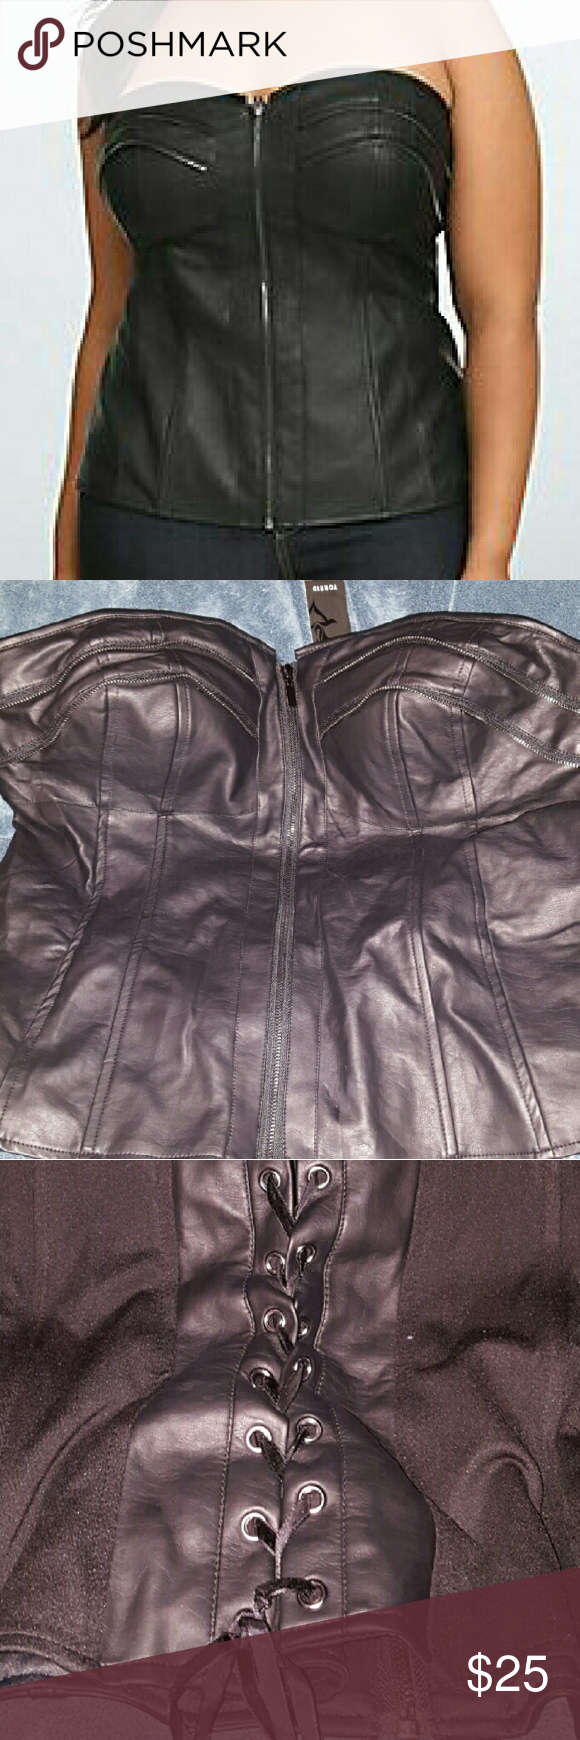 Torrid Faux leather corset NWT   Black corset, Lace and Other